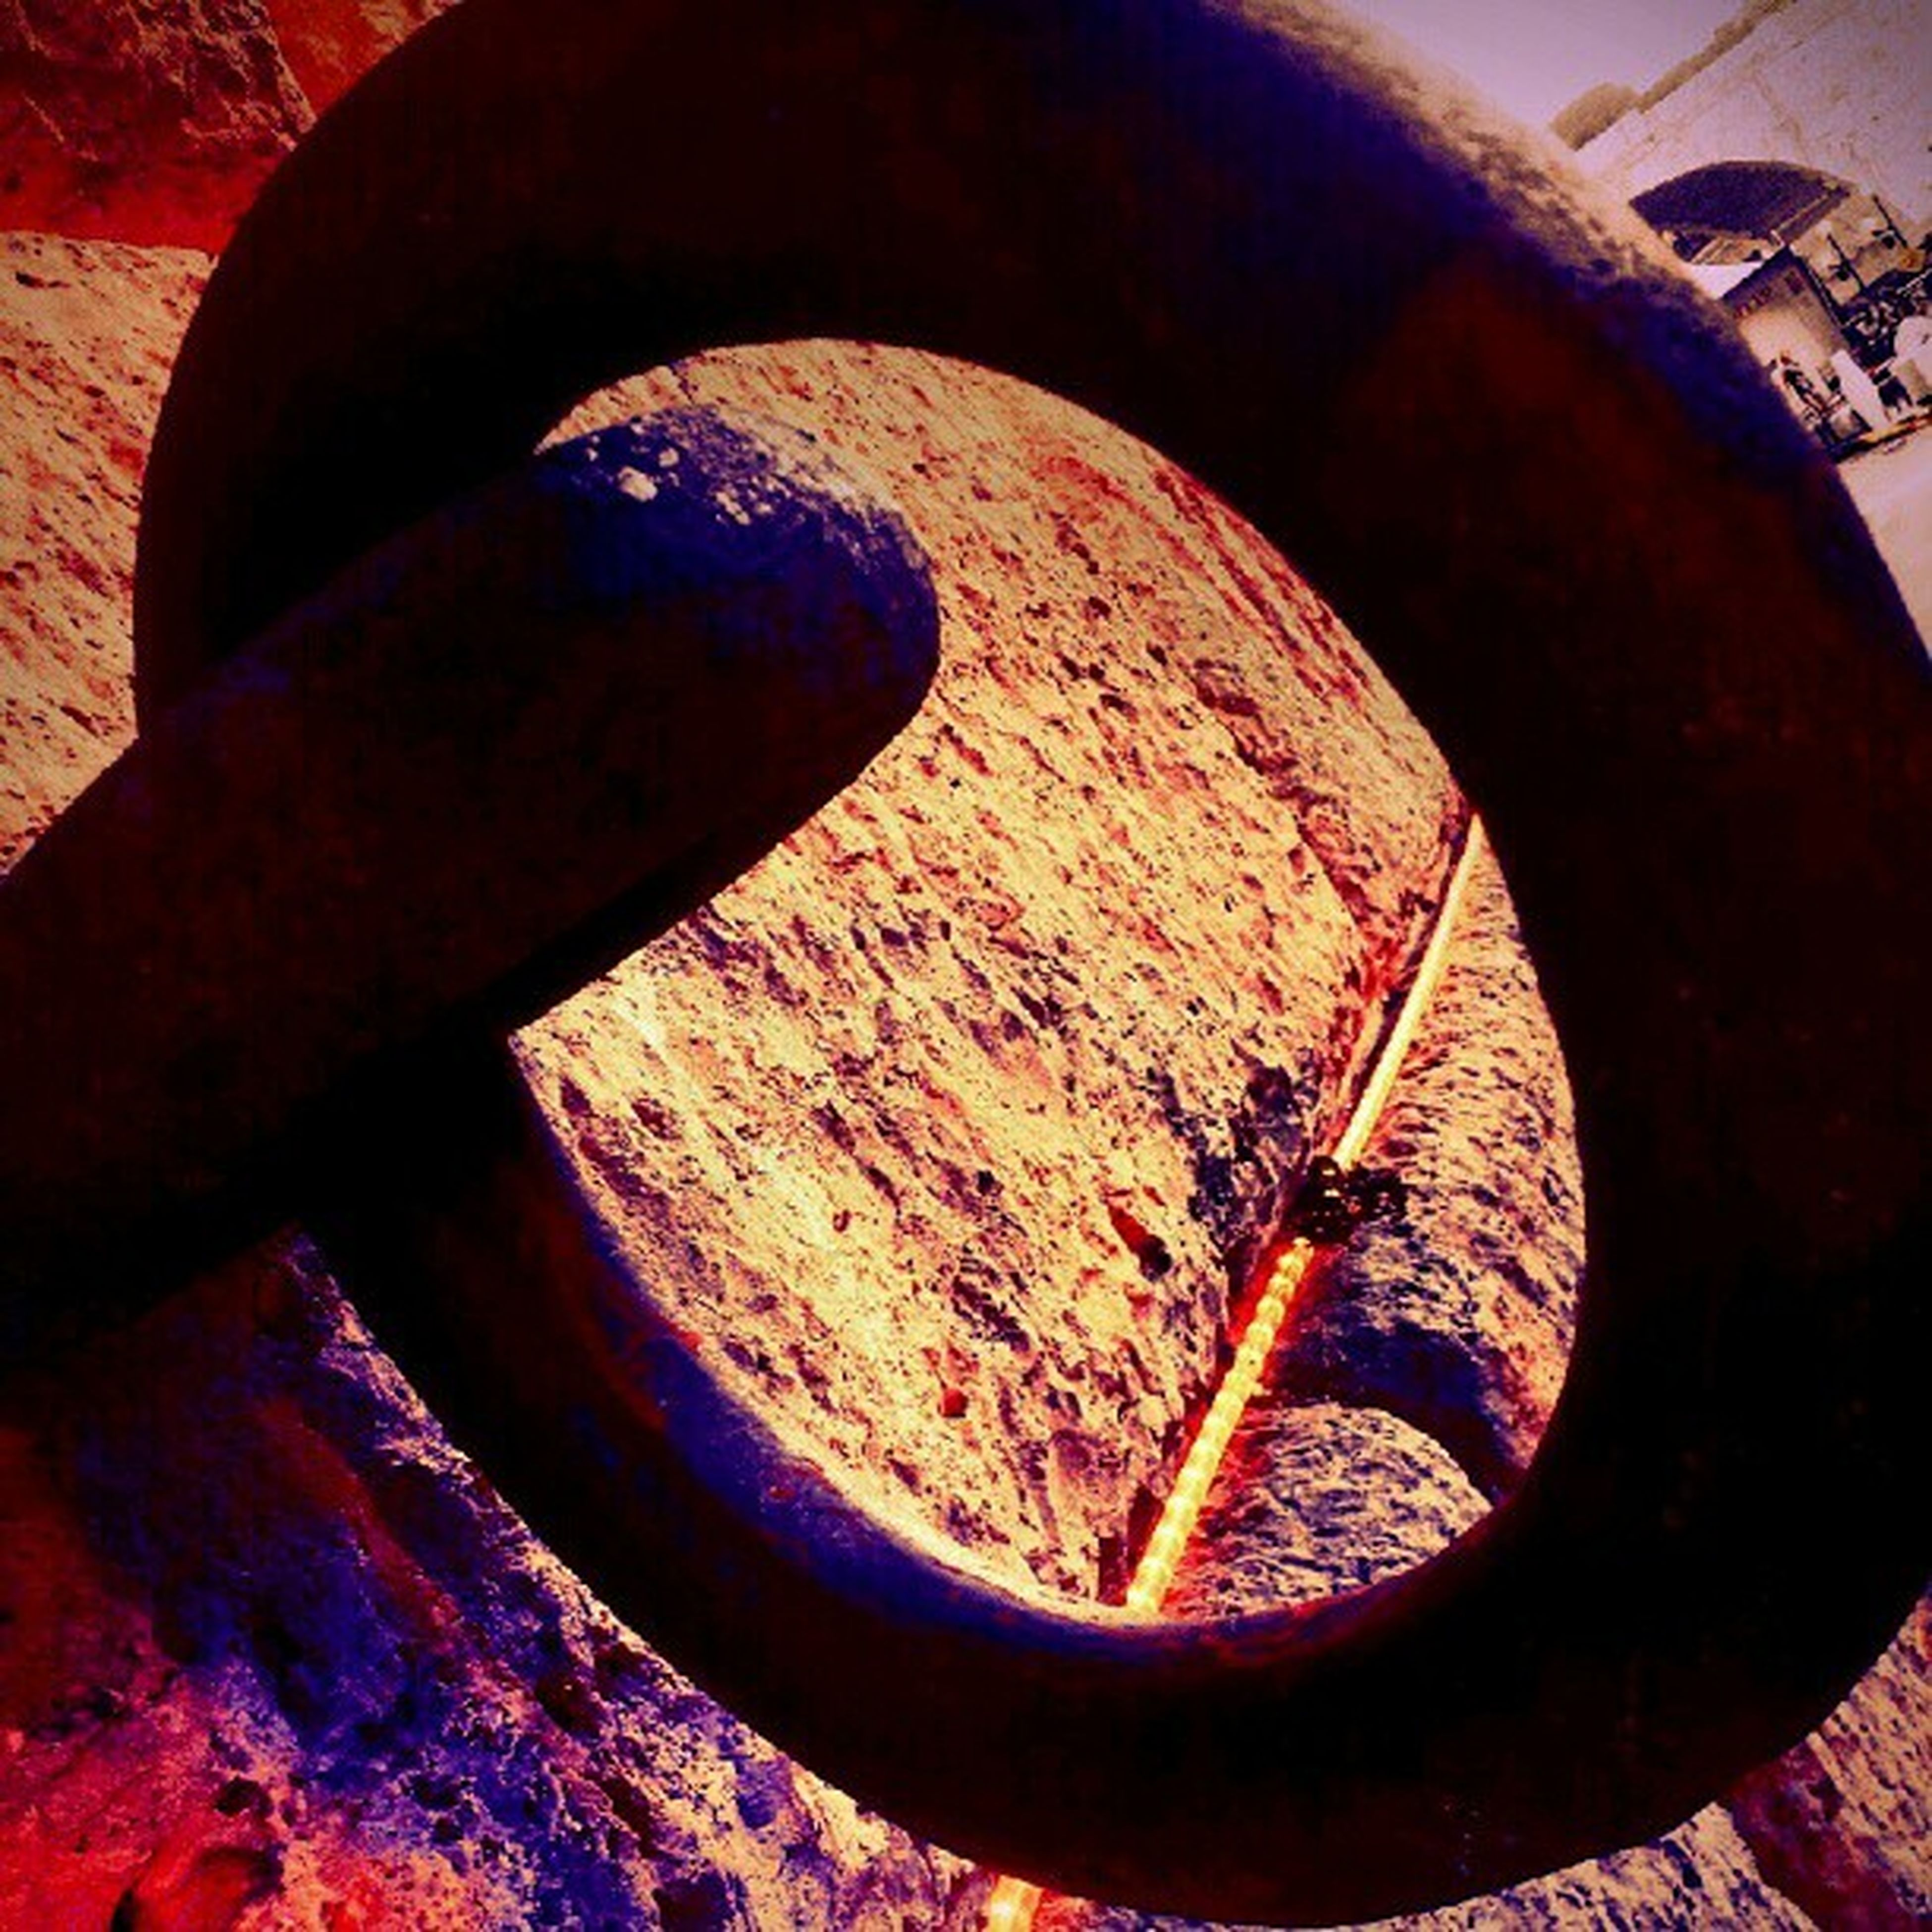 metal, rusty, wheel, metallic, close-up, old, weathered, no people, high angle view, abandoned, outdoors, obsolete, built structure, sunlight, deterioration, circle, day, damaged, run-down, part of